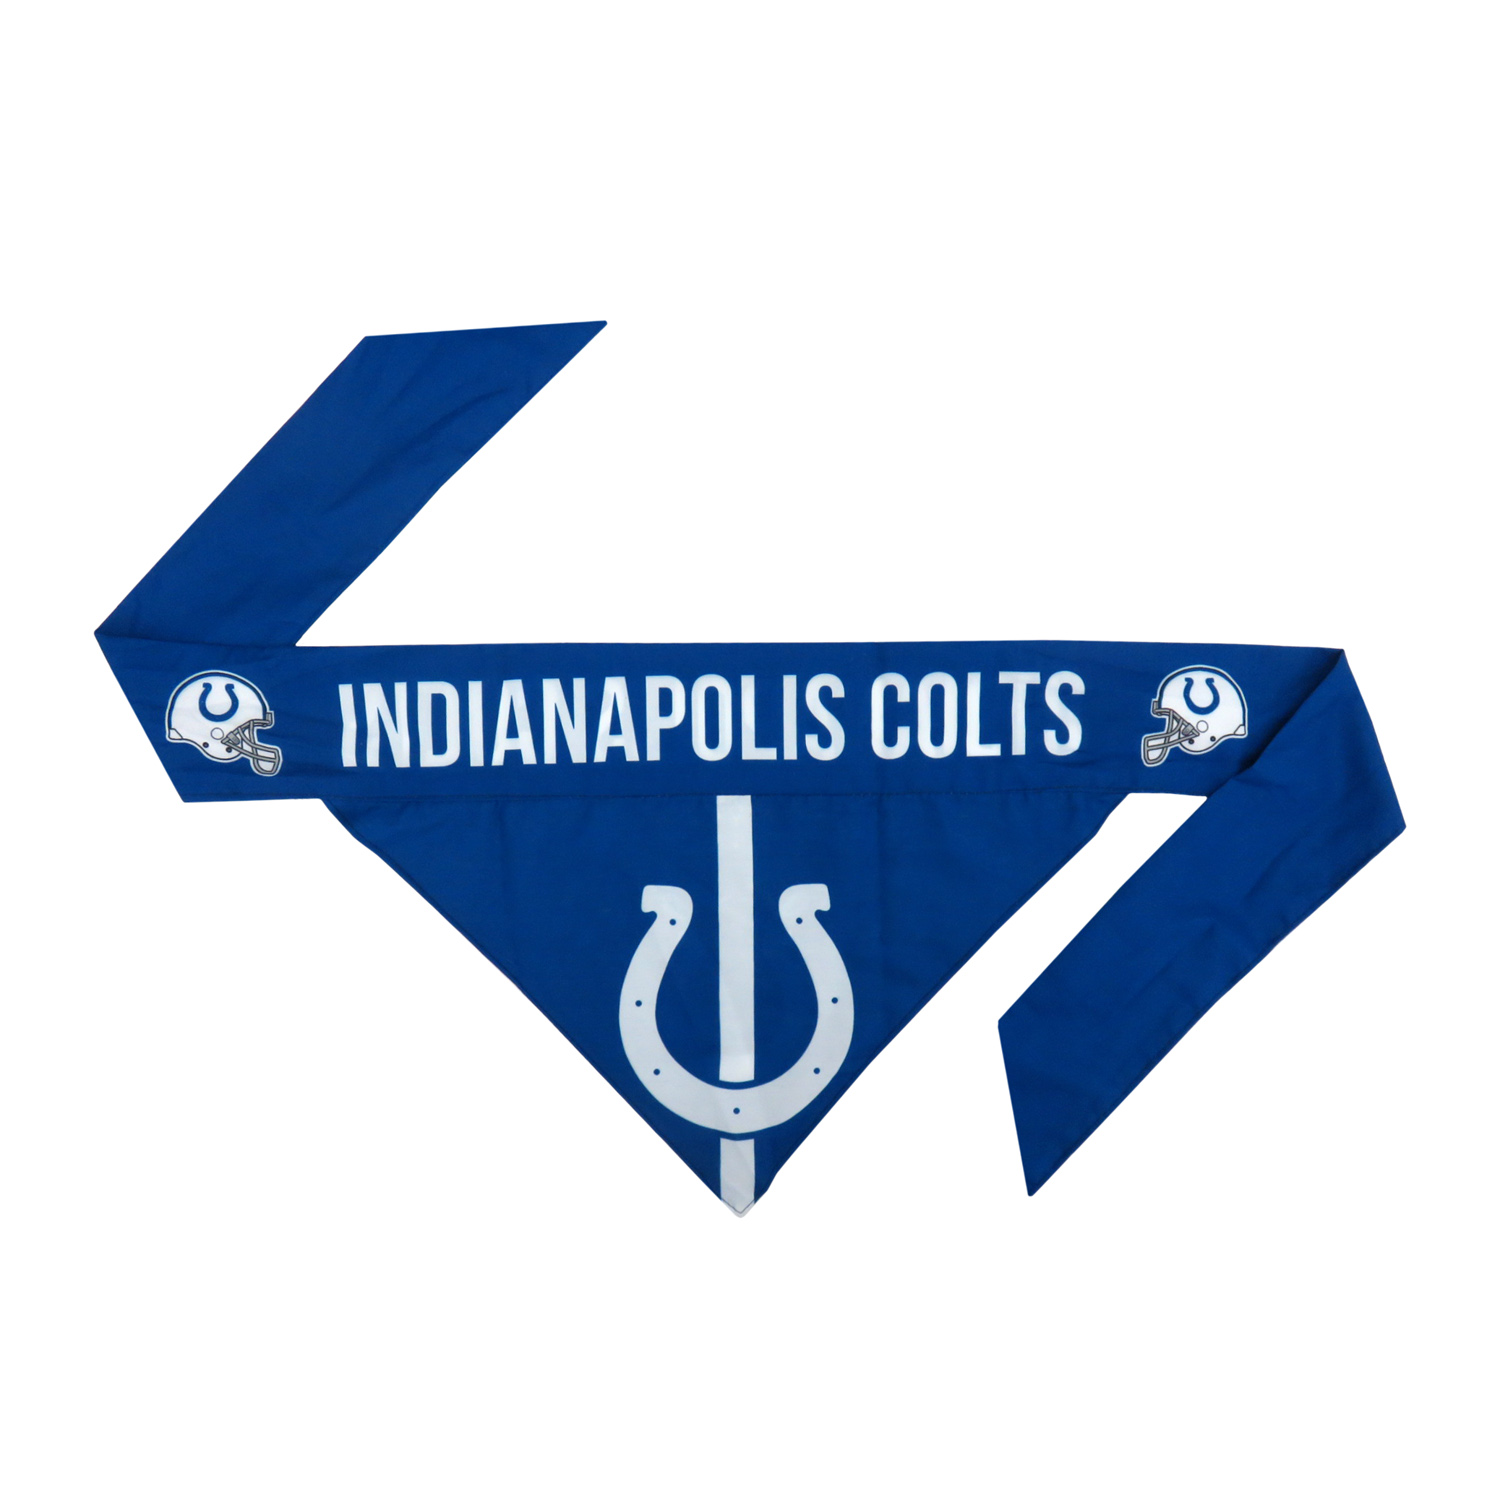 Little Earth Tie-On Dog Bandana, NFL Indianapolis Colts, Small